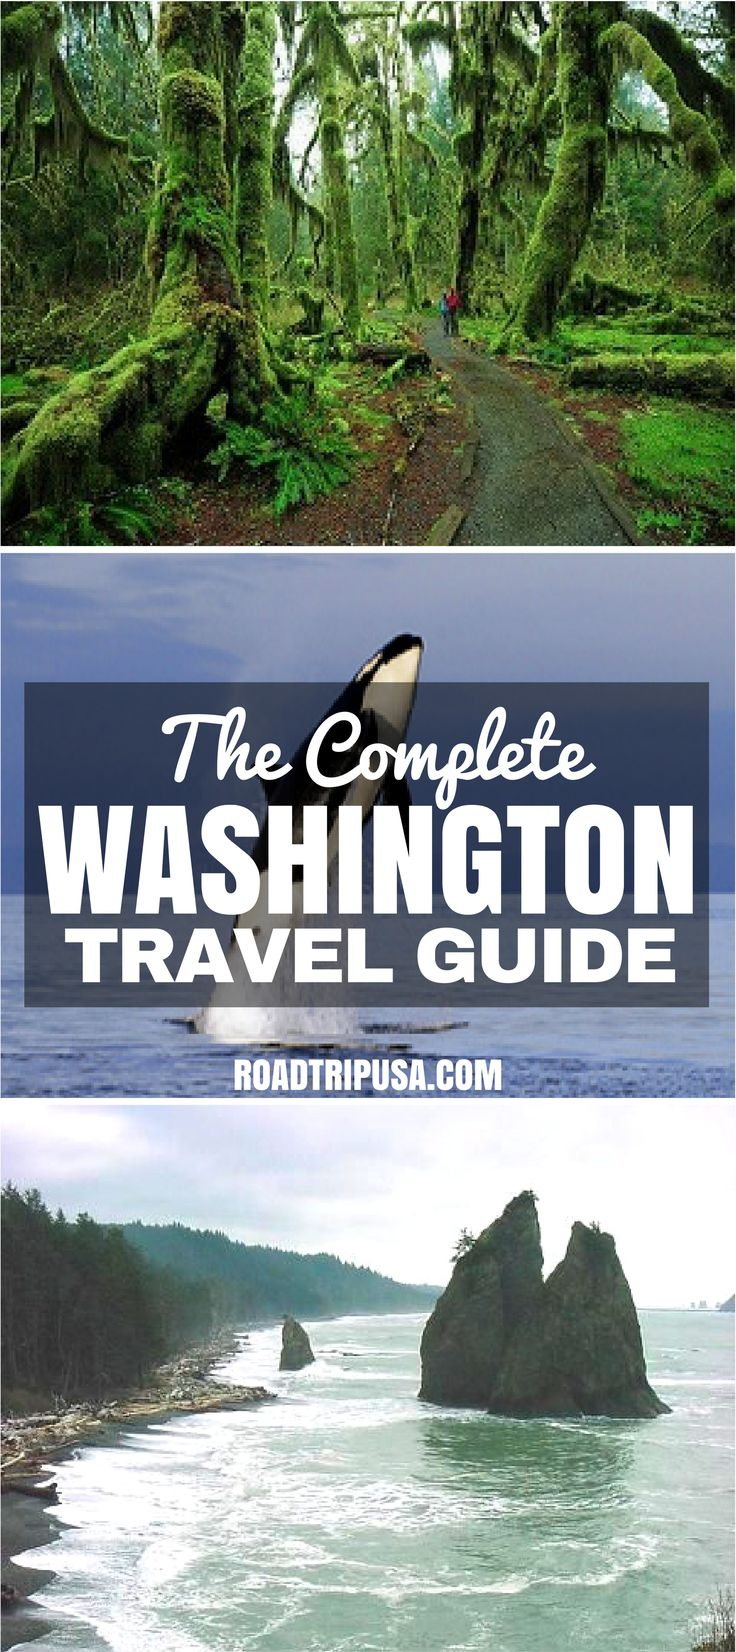 Everything you need to know about visiting Washington! Find out what the best attractions are in the evergreen state and what experiences you must have... along with tips on lodging and driving itineraries.